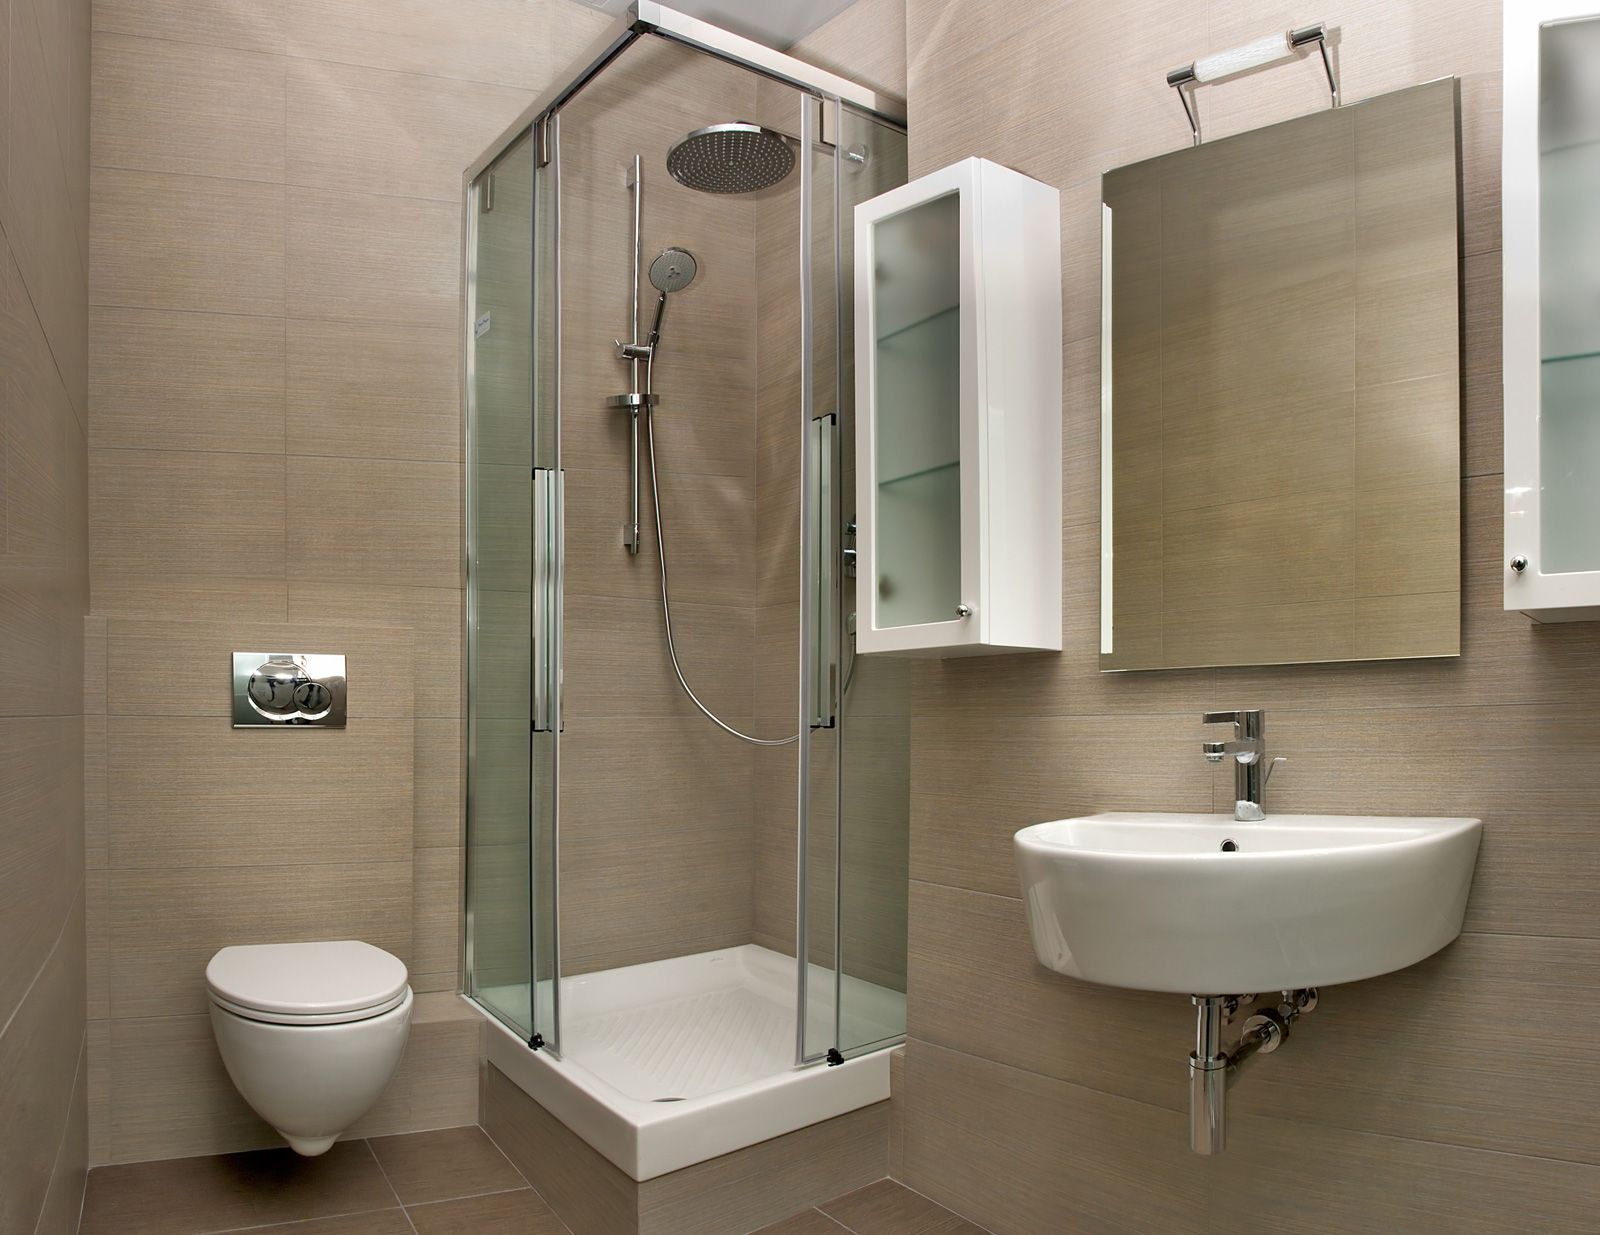 Simple bathroom shower - Shower Ideas For Small Bathroom To Inspire You On How To Decorate Your Bathroom 924963